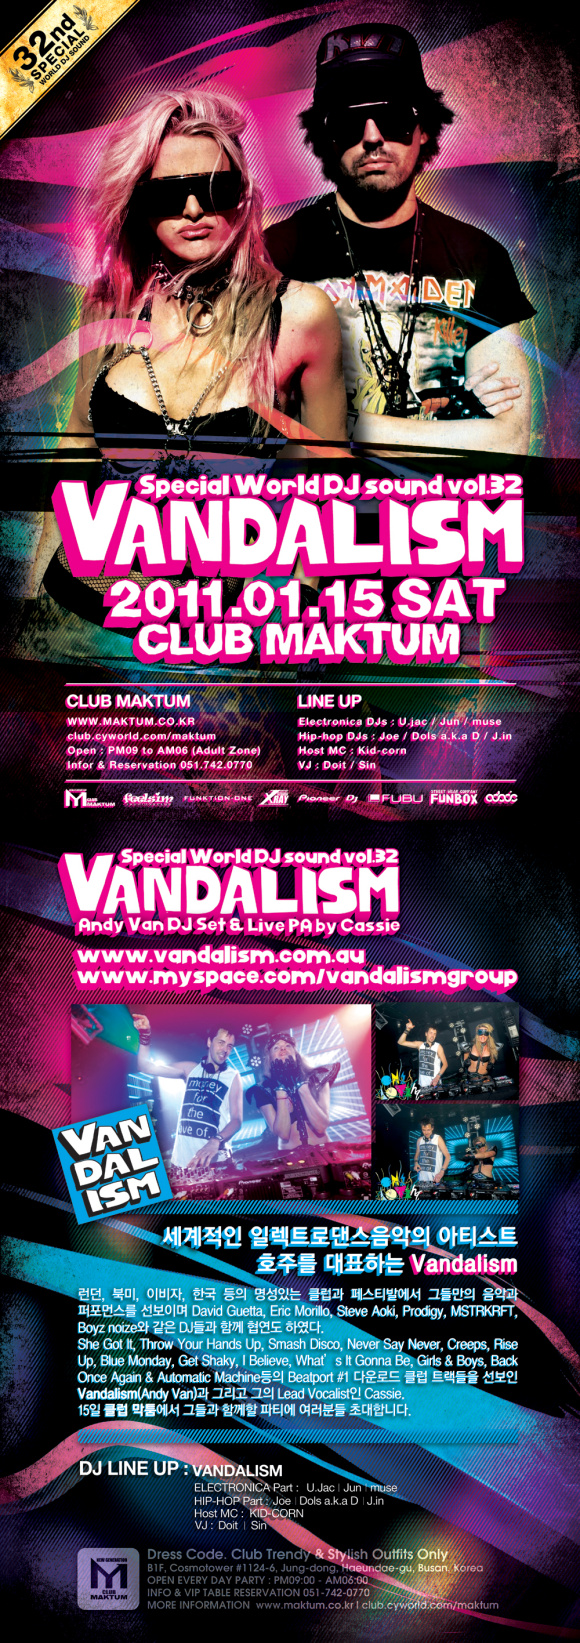 THIS WEEKEND! VANDALISM IN CLUB MAKTUM